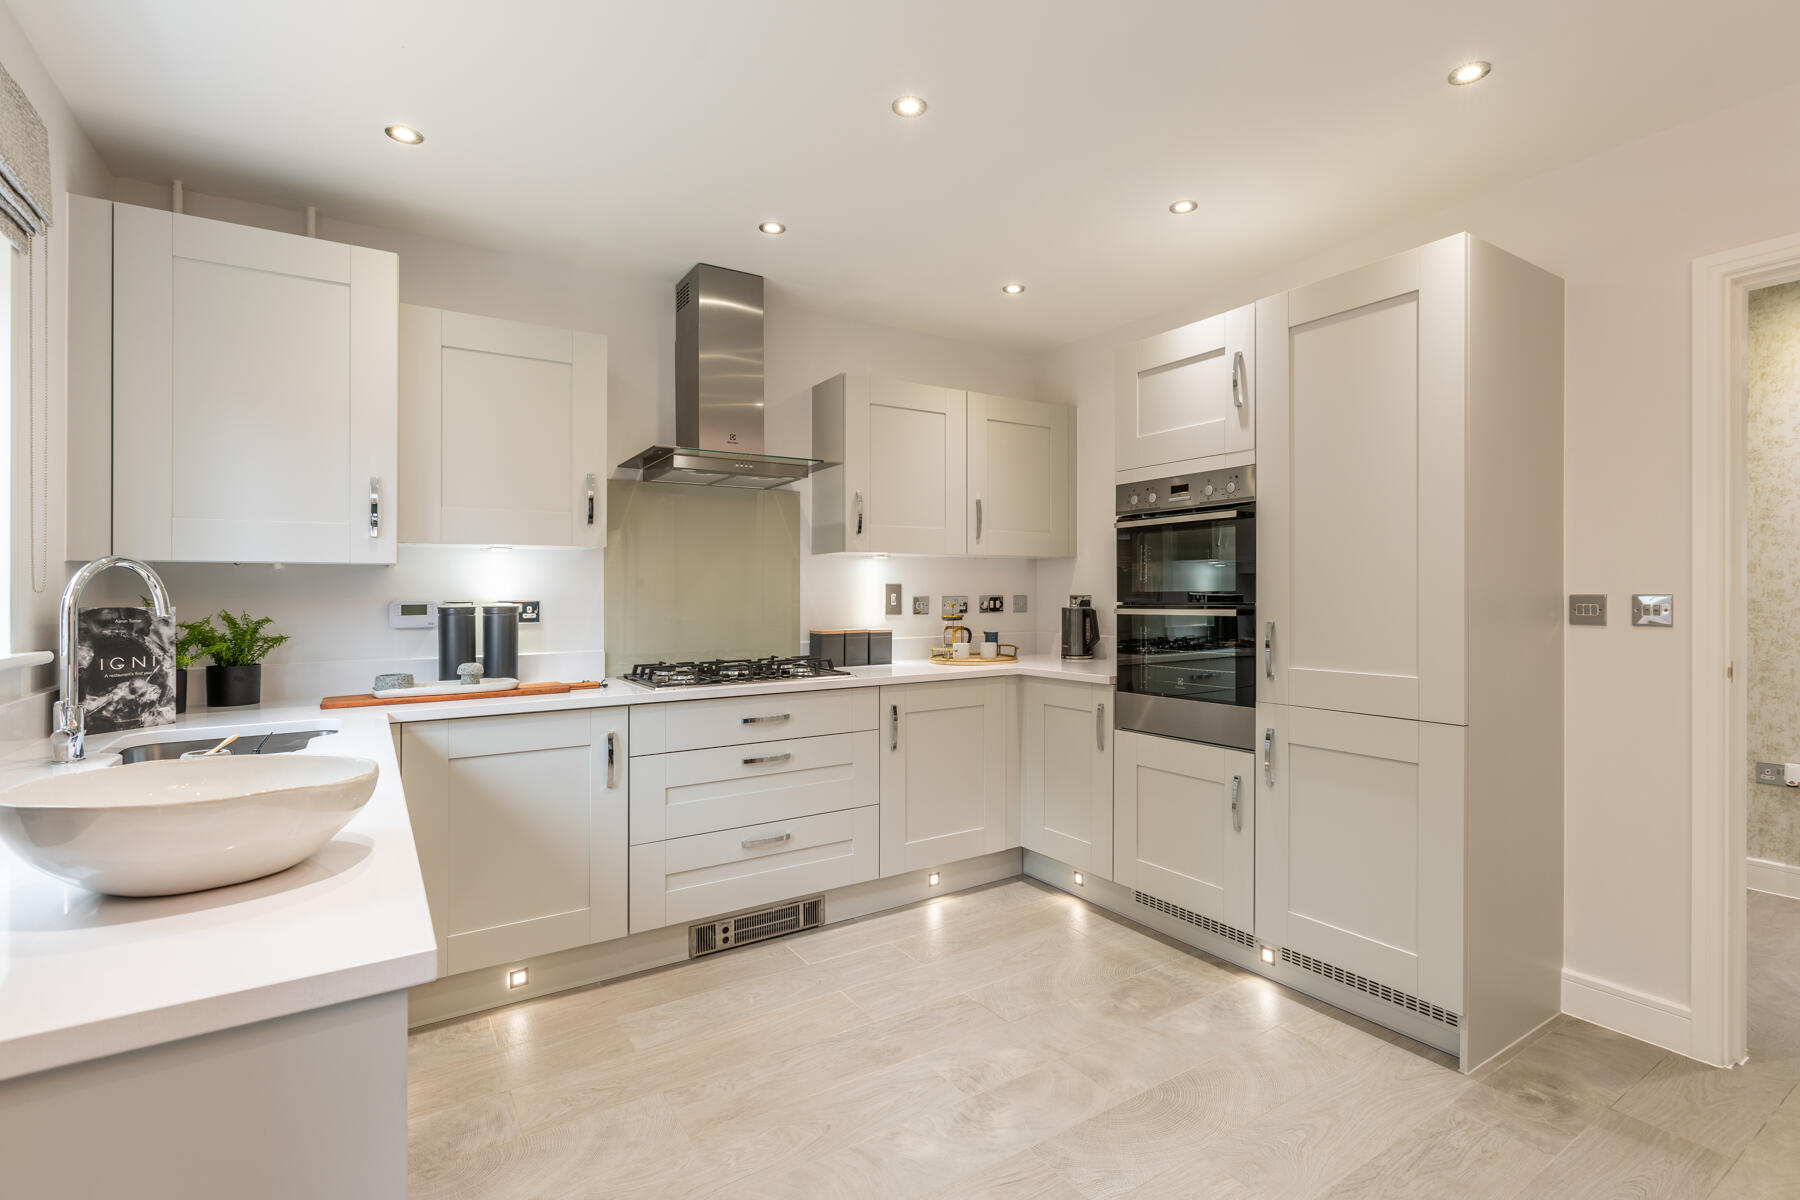 TW EA_The Alders_Garrton_Kitchen 2